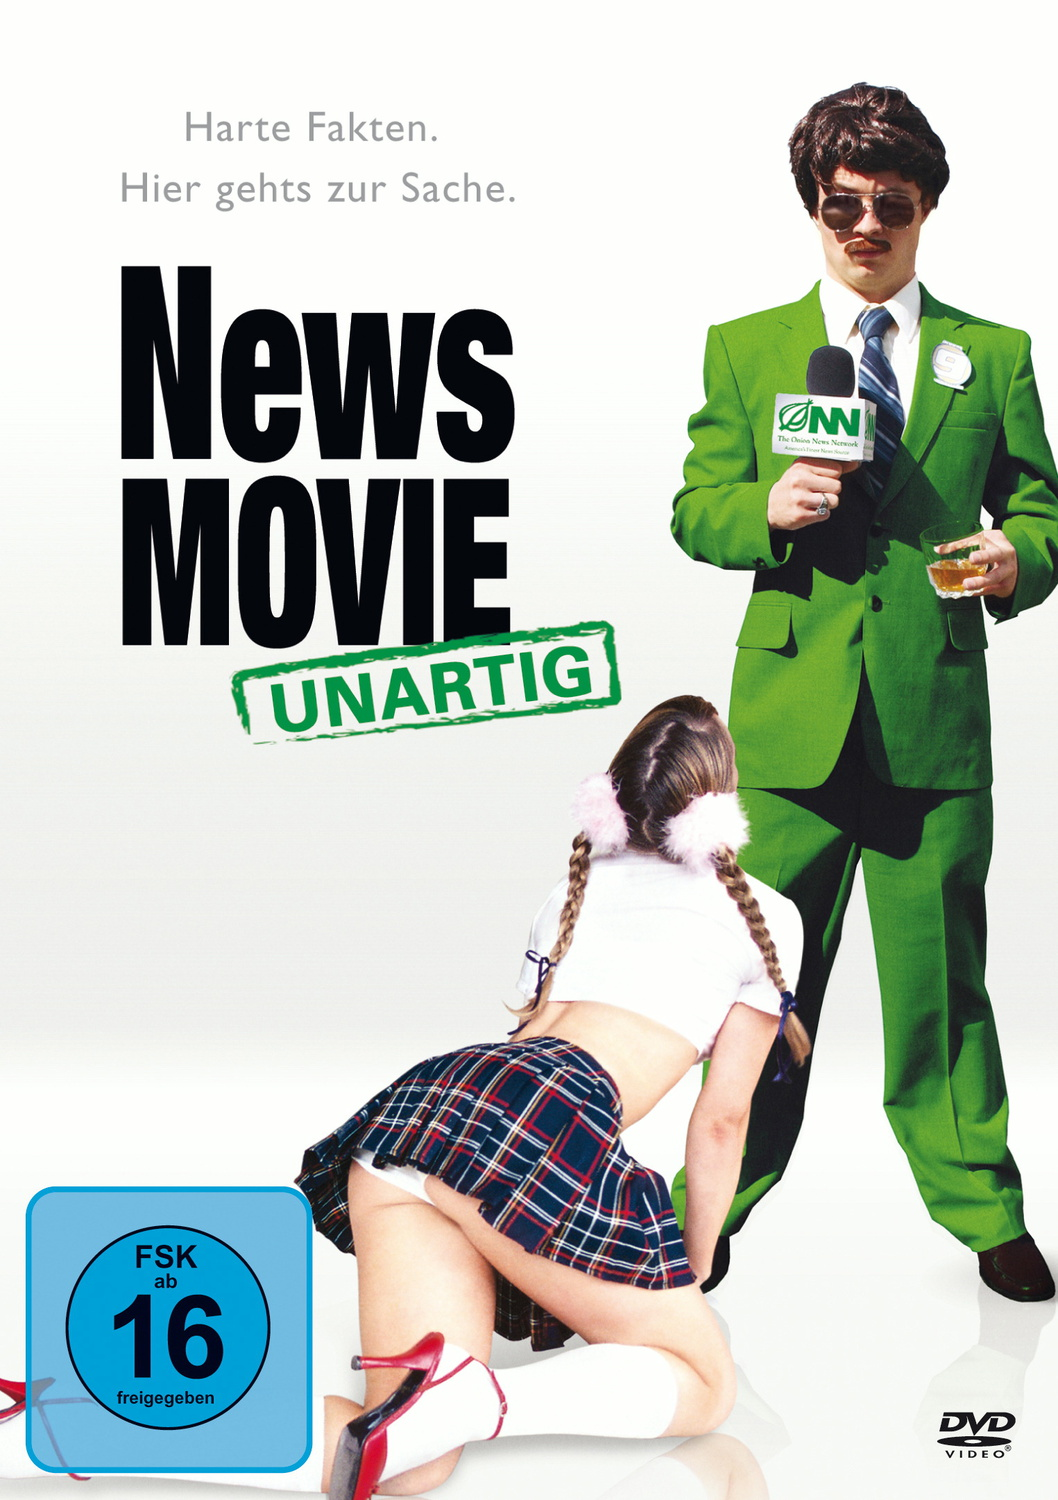 The News Movie